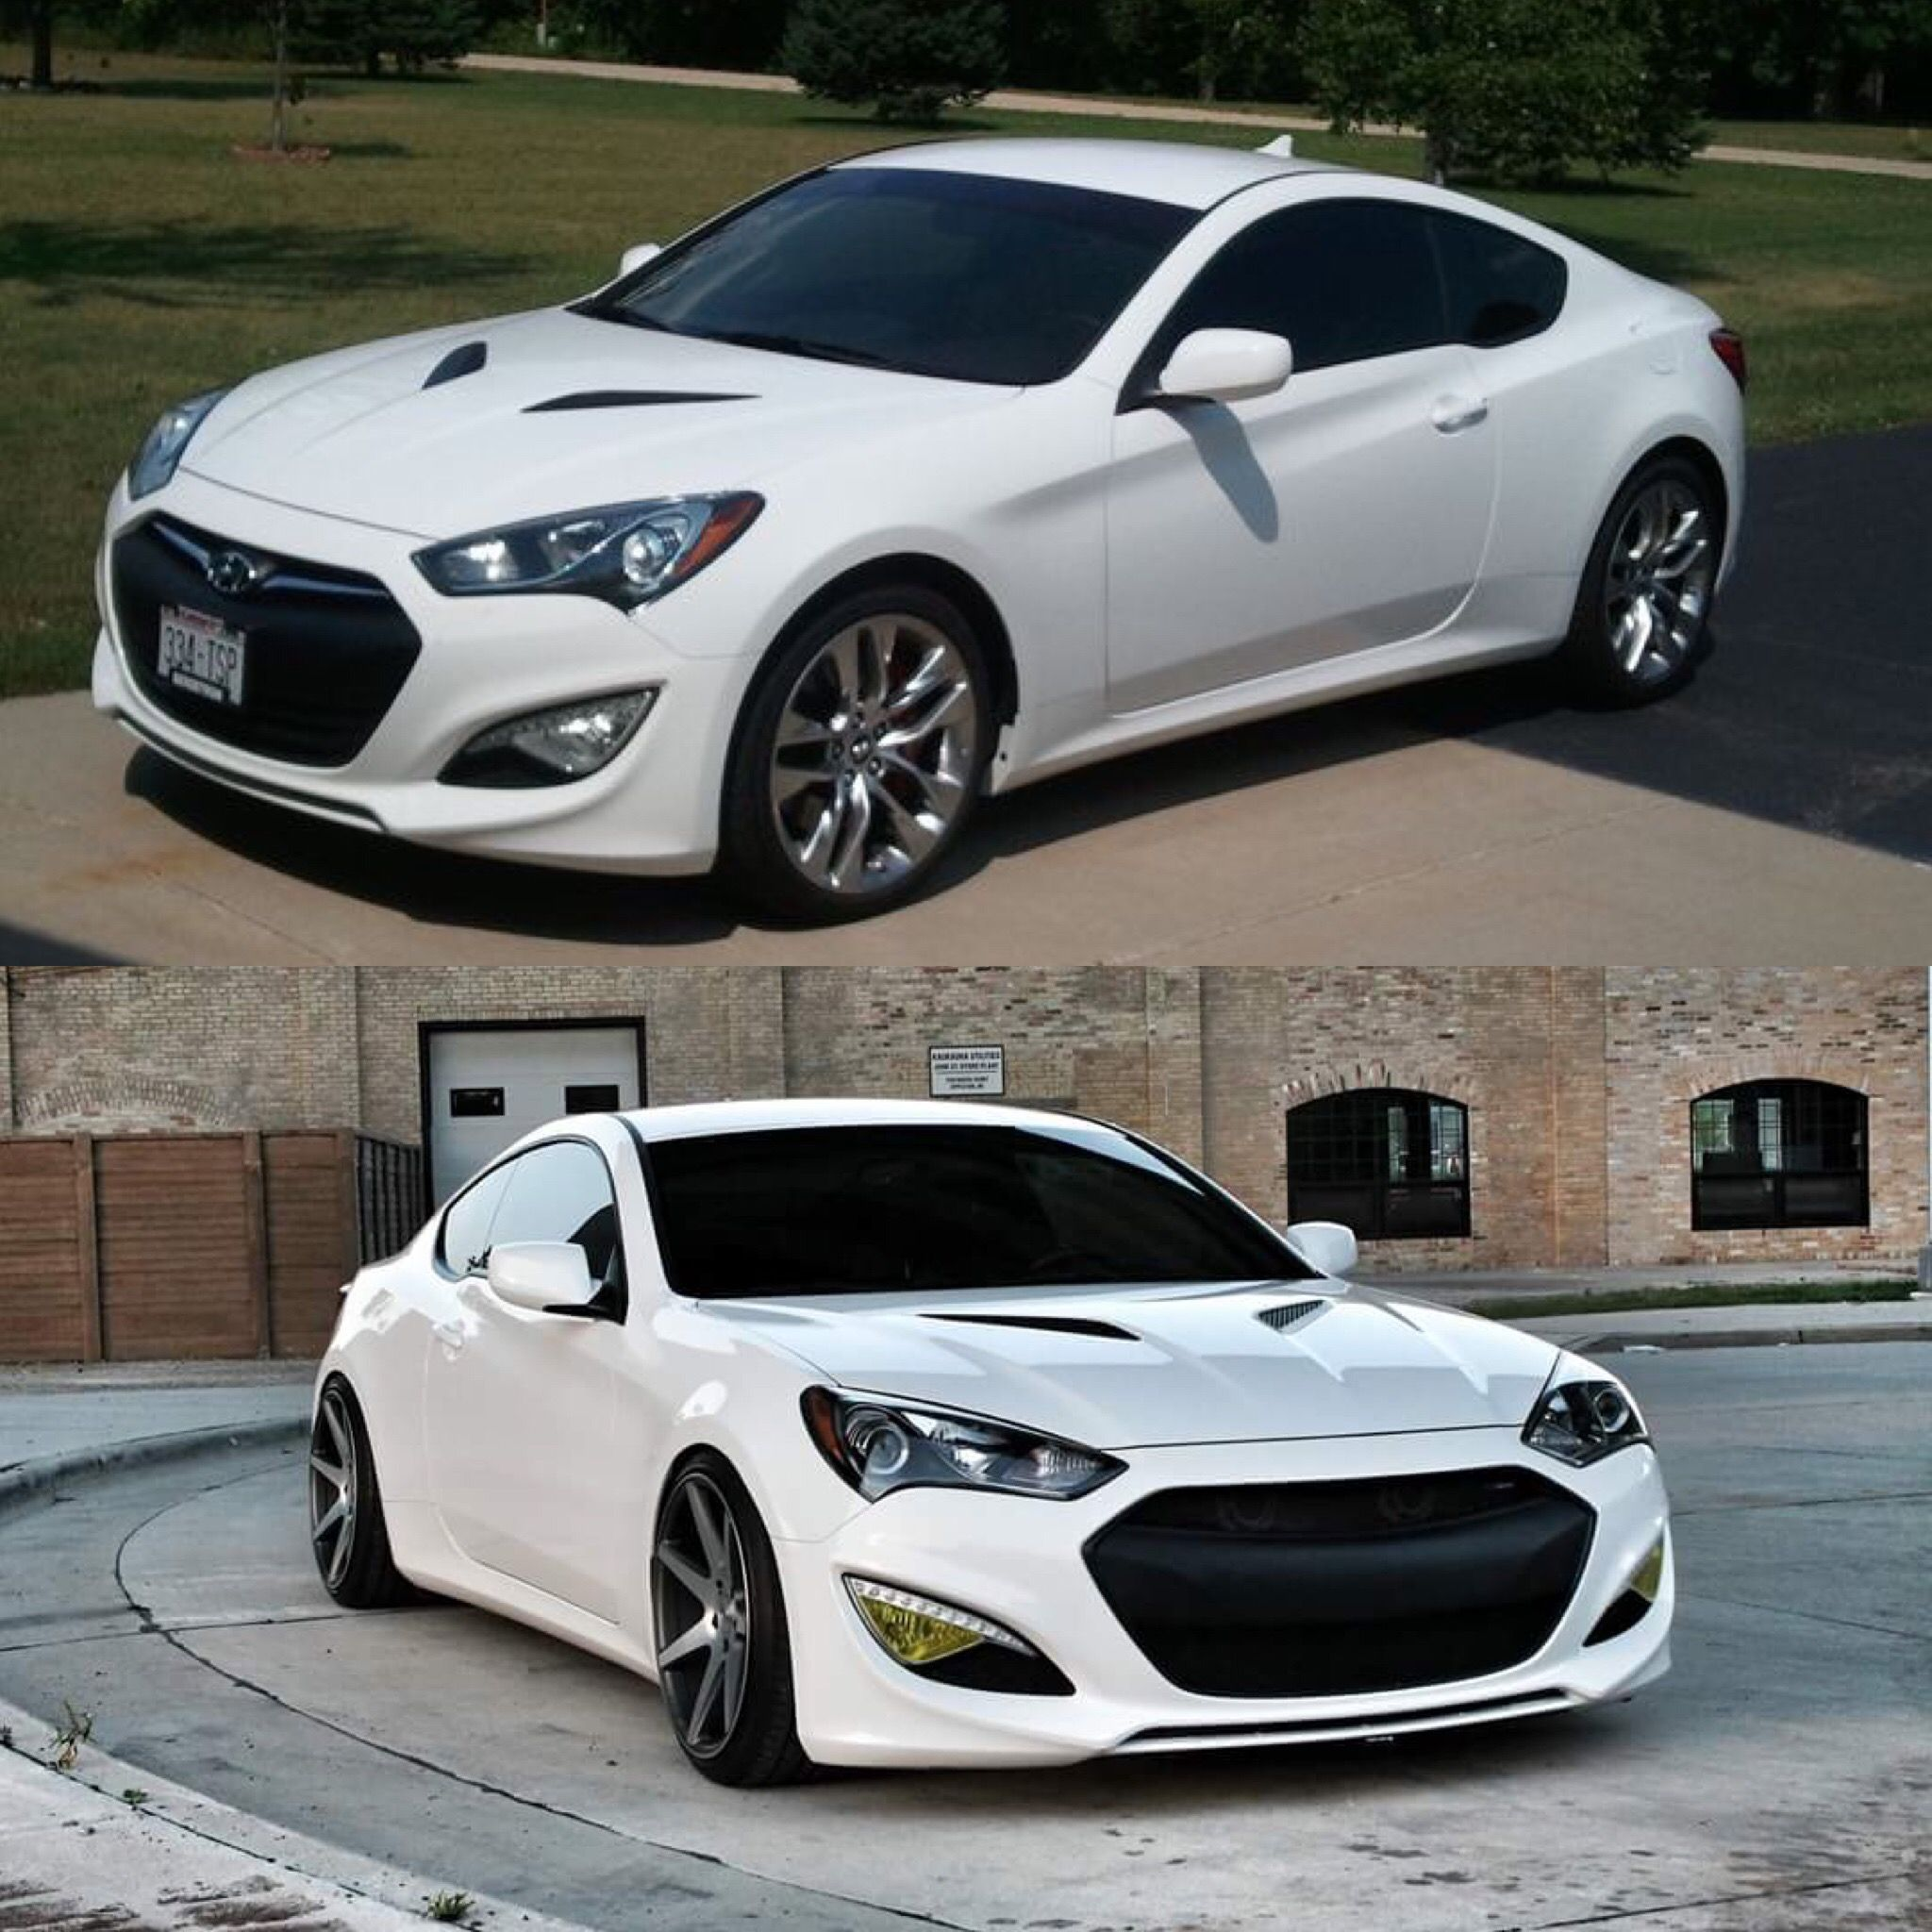 My Mans2013 Hyundai Genesis Coupe 3 8 Rspec Before And After Hyundai Genesis Hyundai Genesis Coupe Hyundai